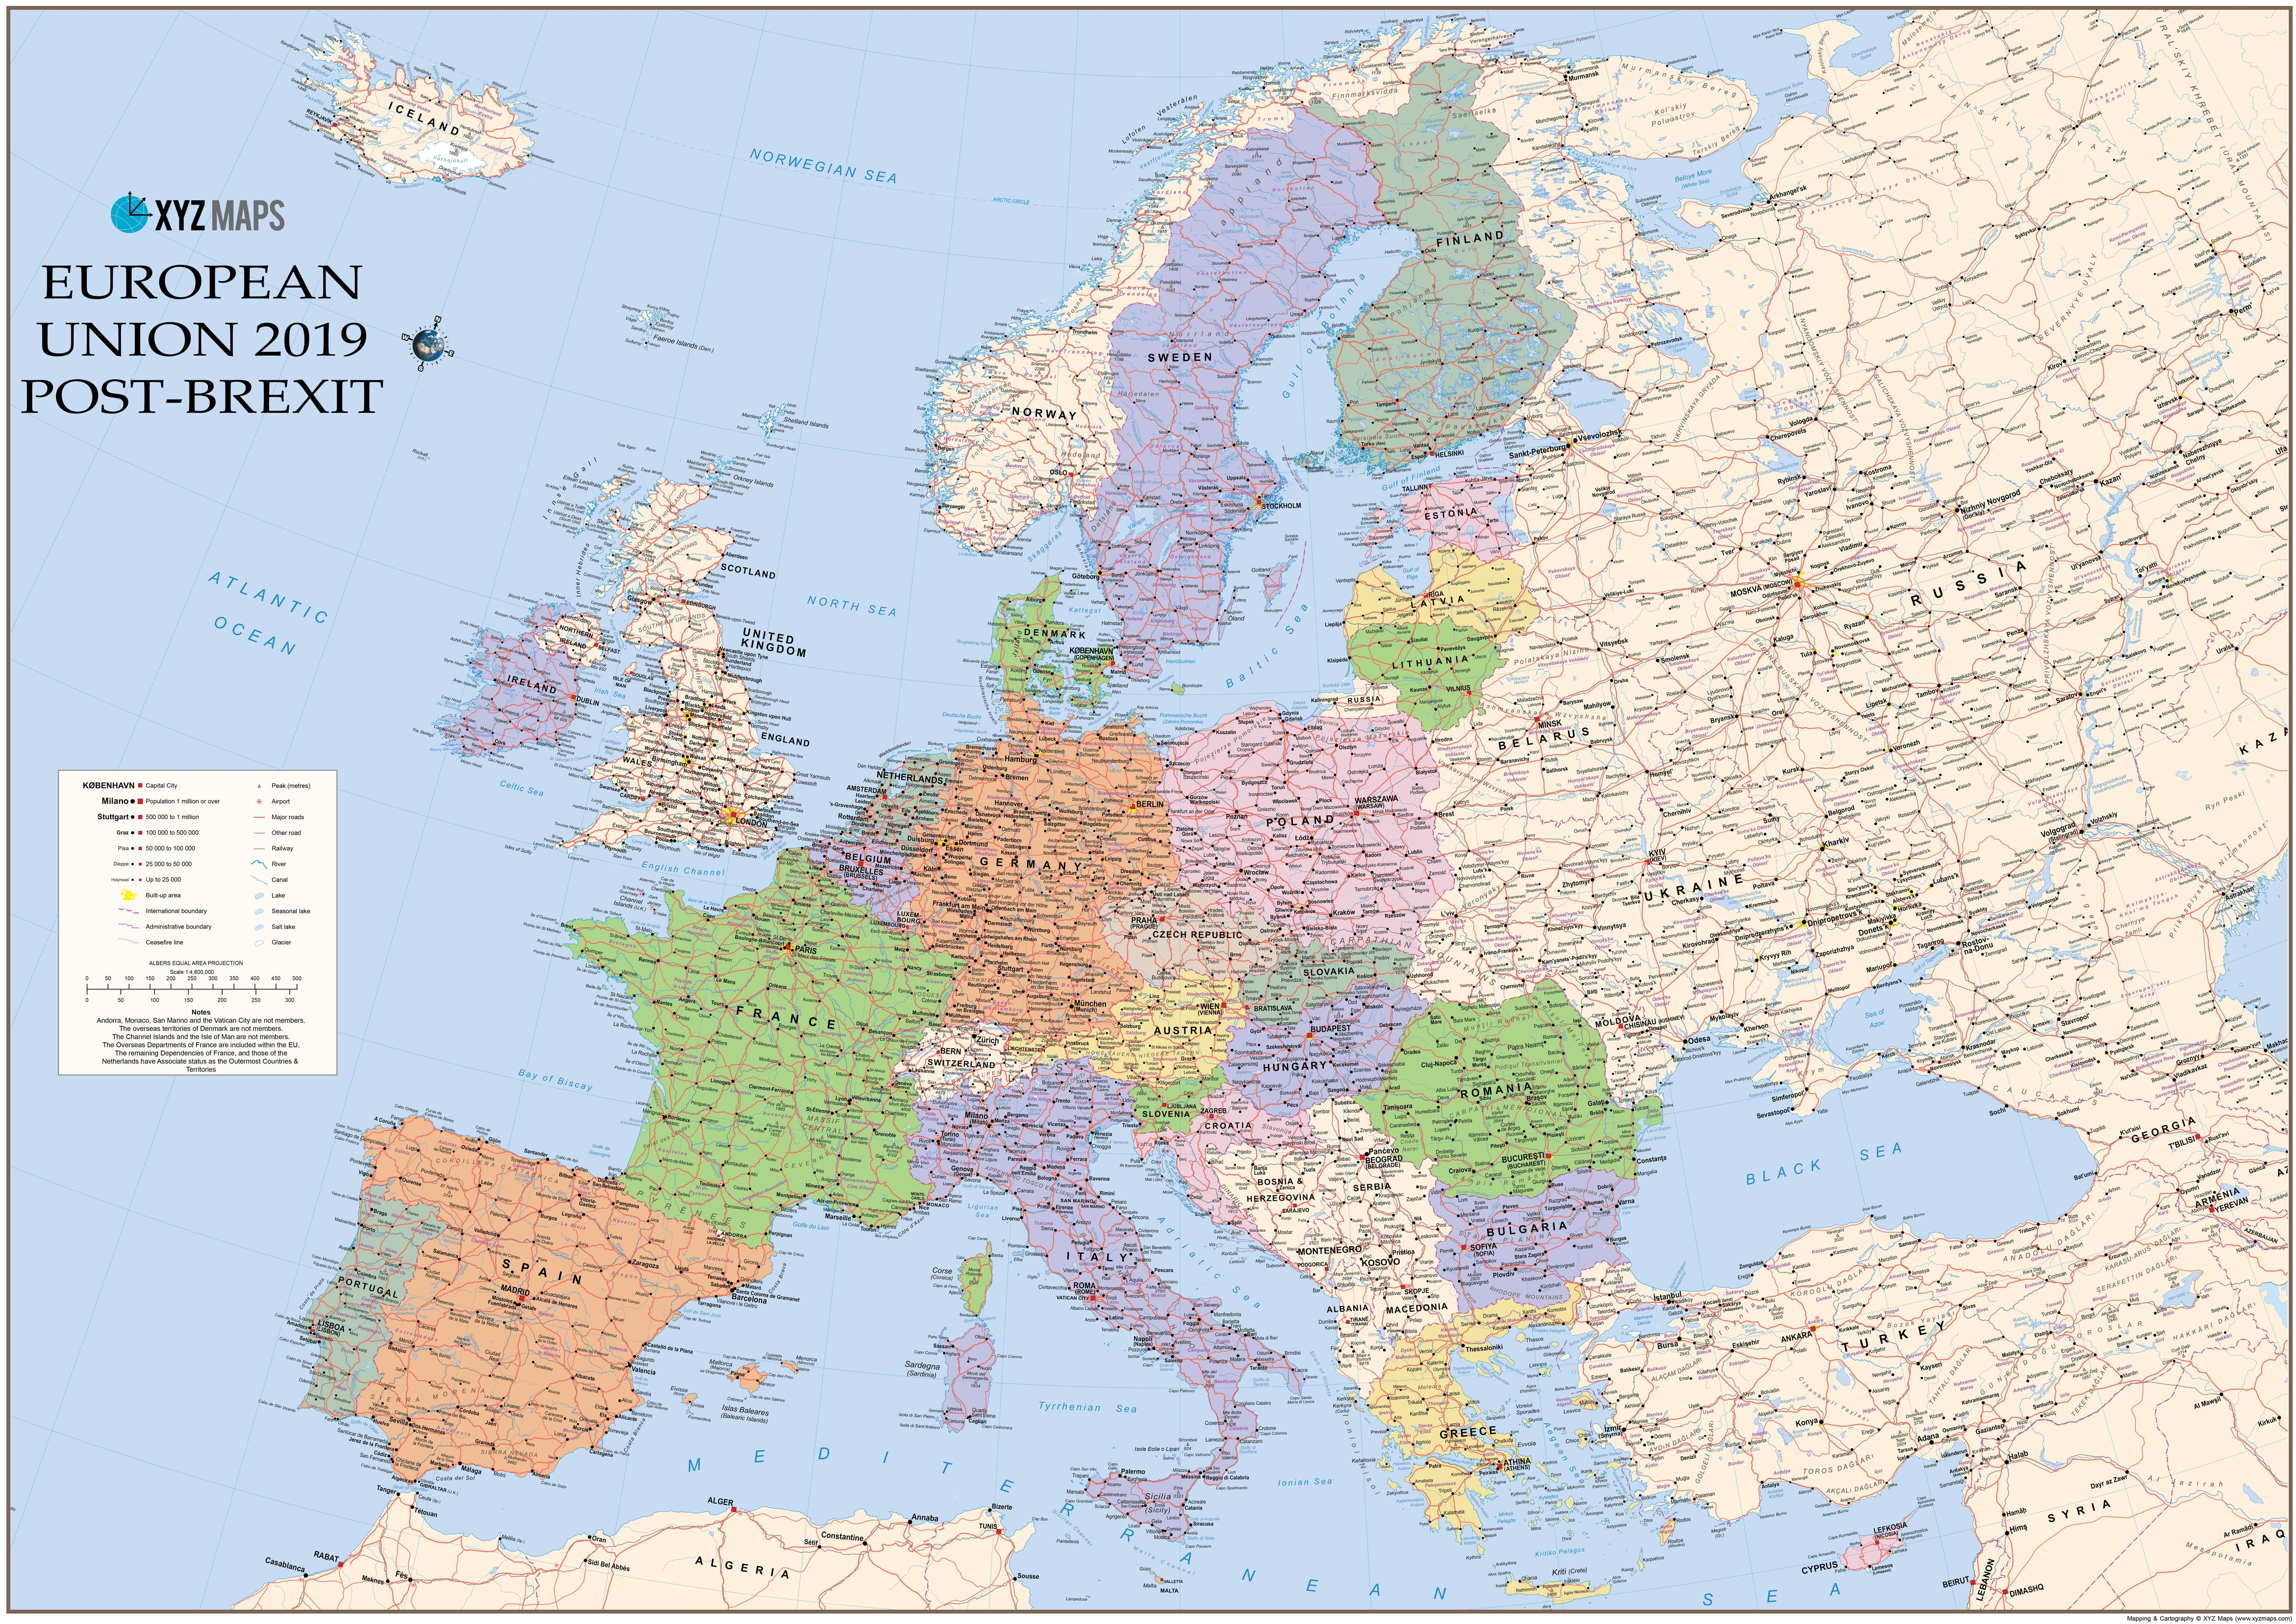 EU Map 2019 Post Brexit - Europe - Europe - Wall Maps